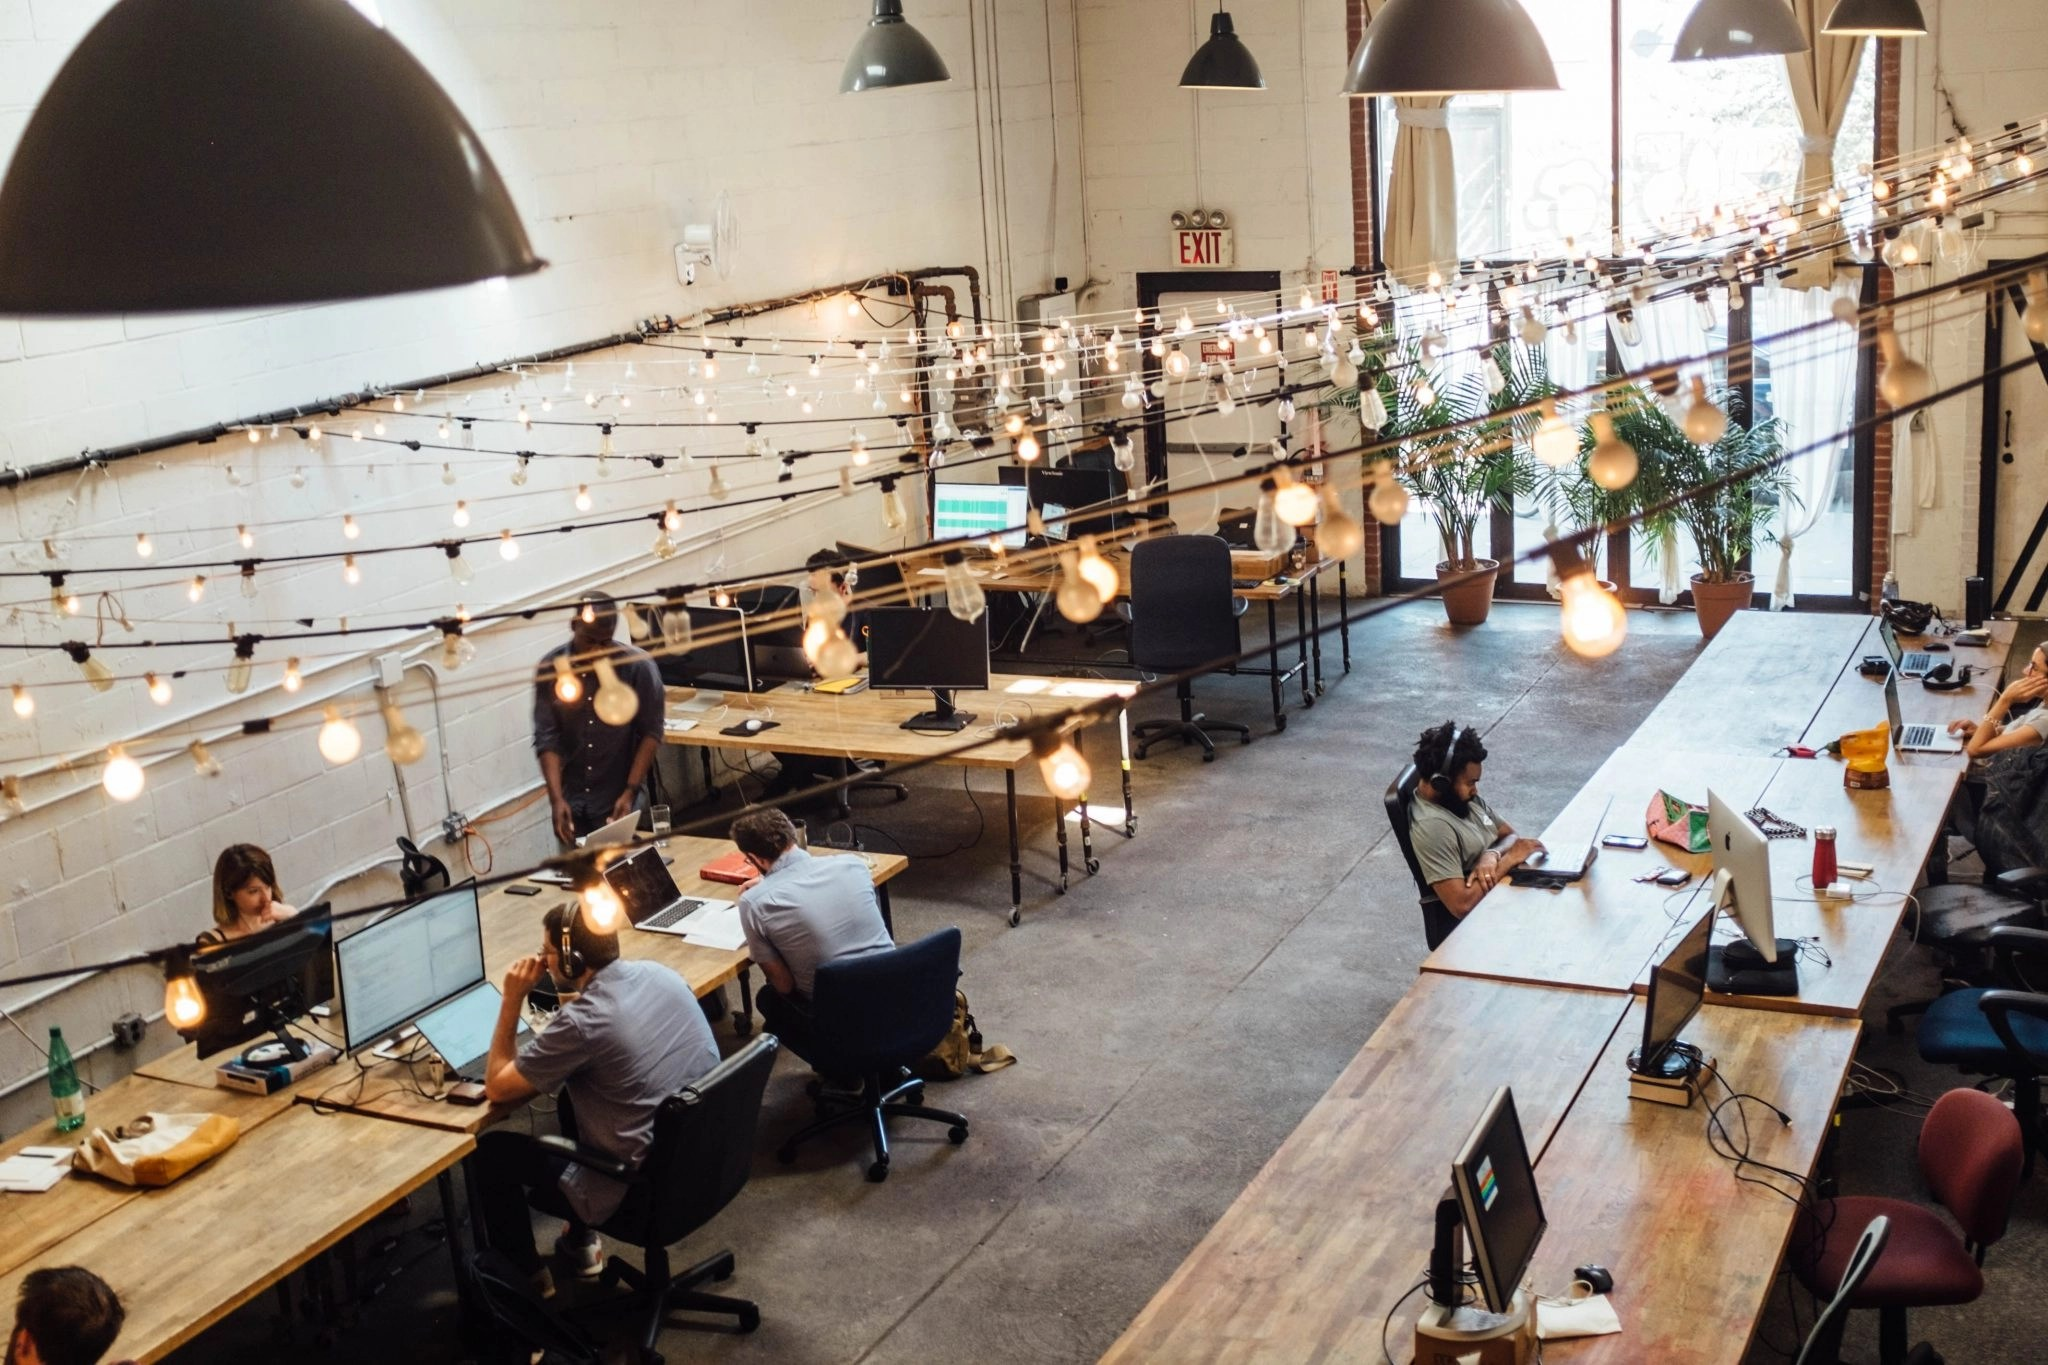 Many freelancers working at many tables